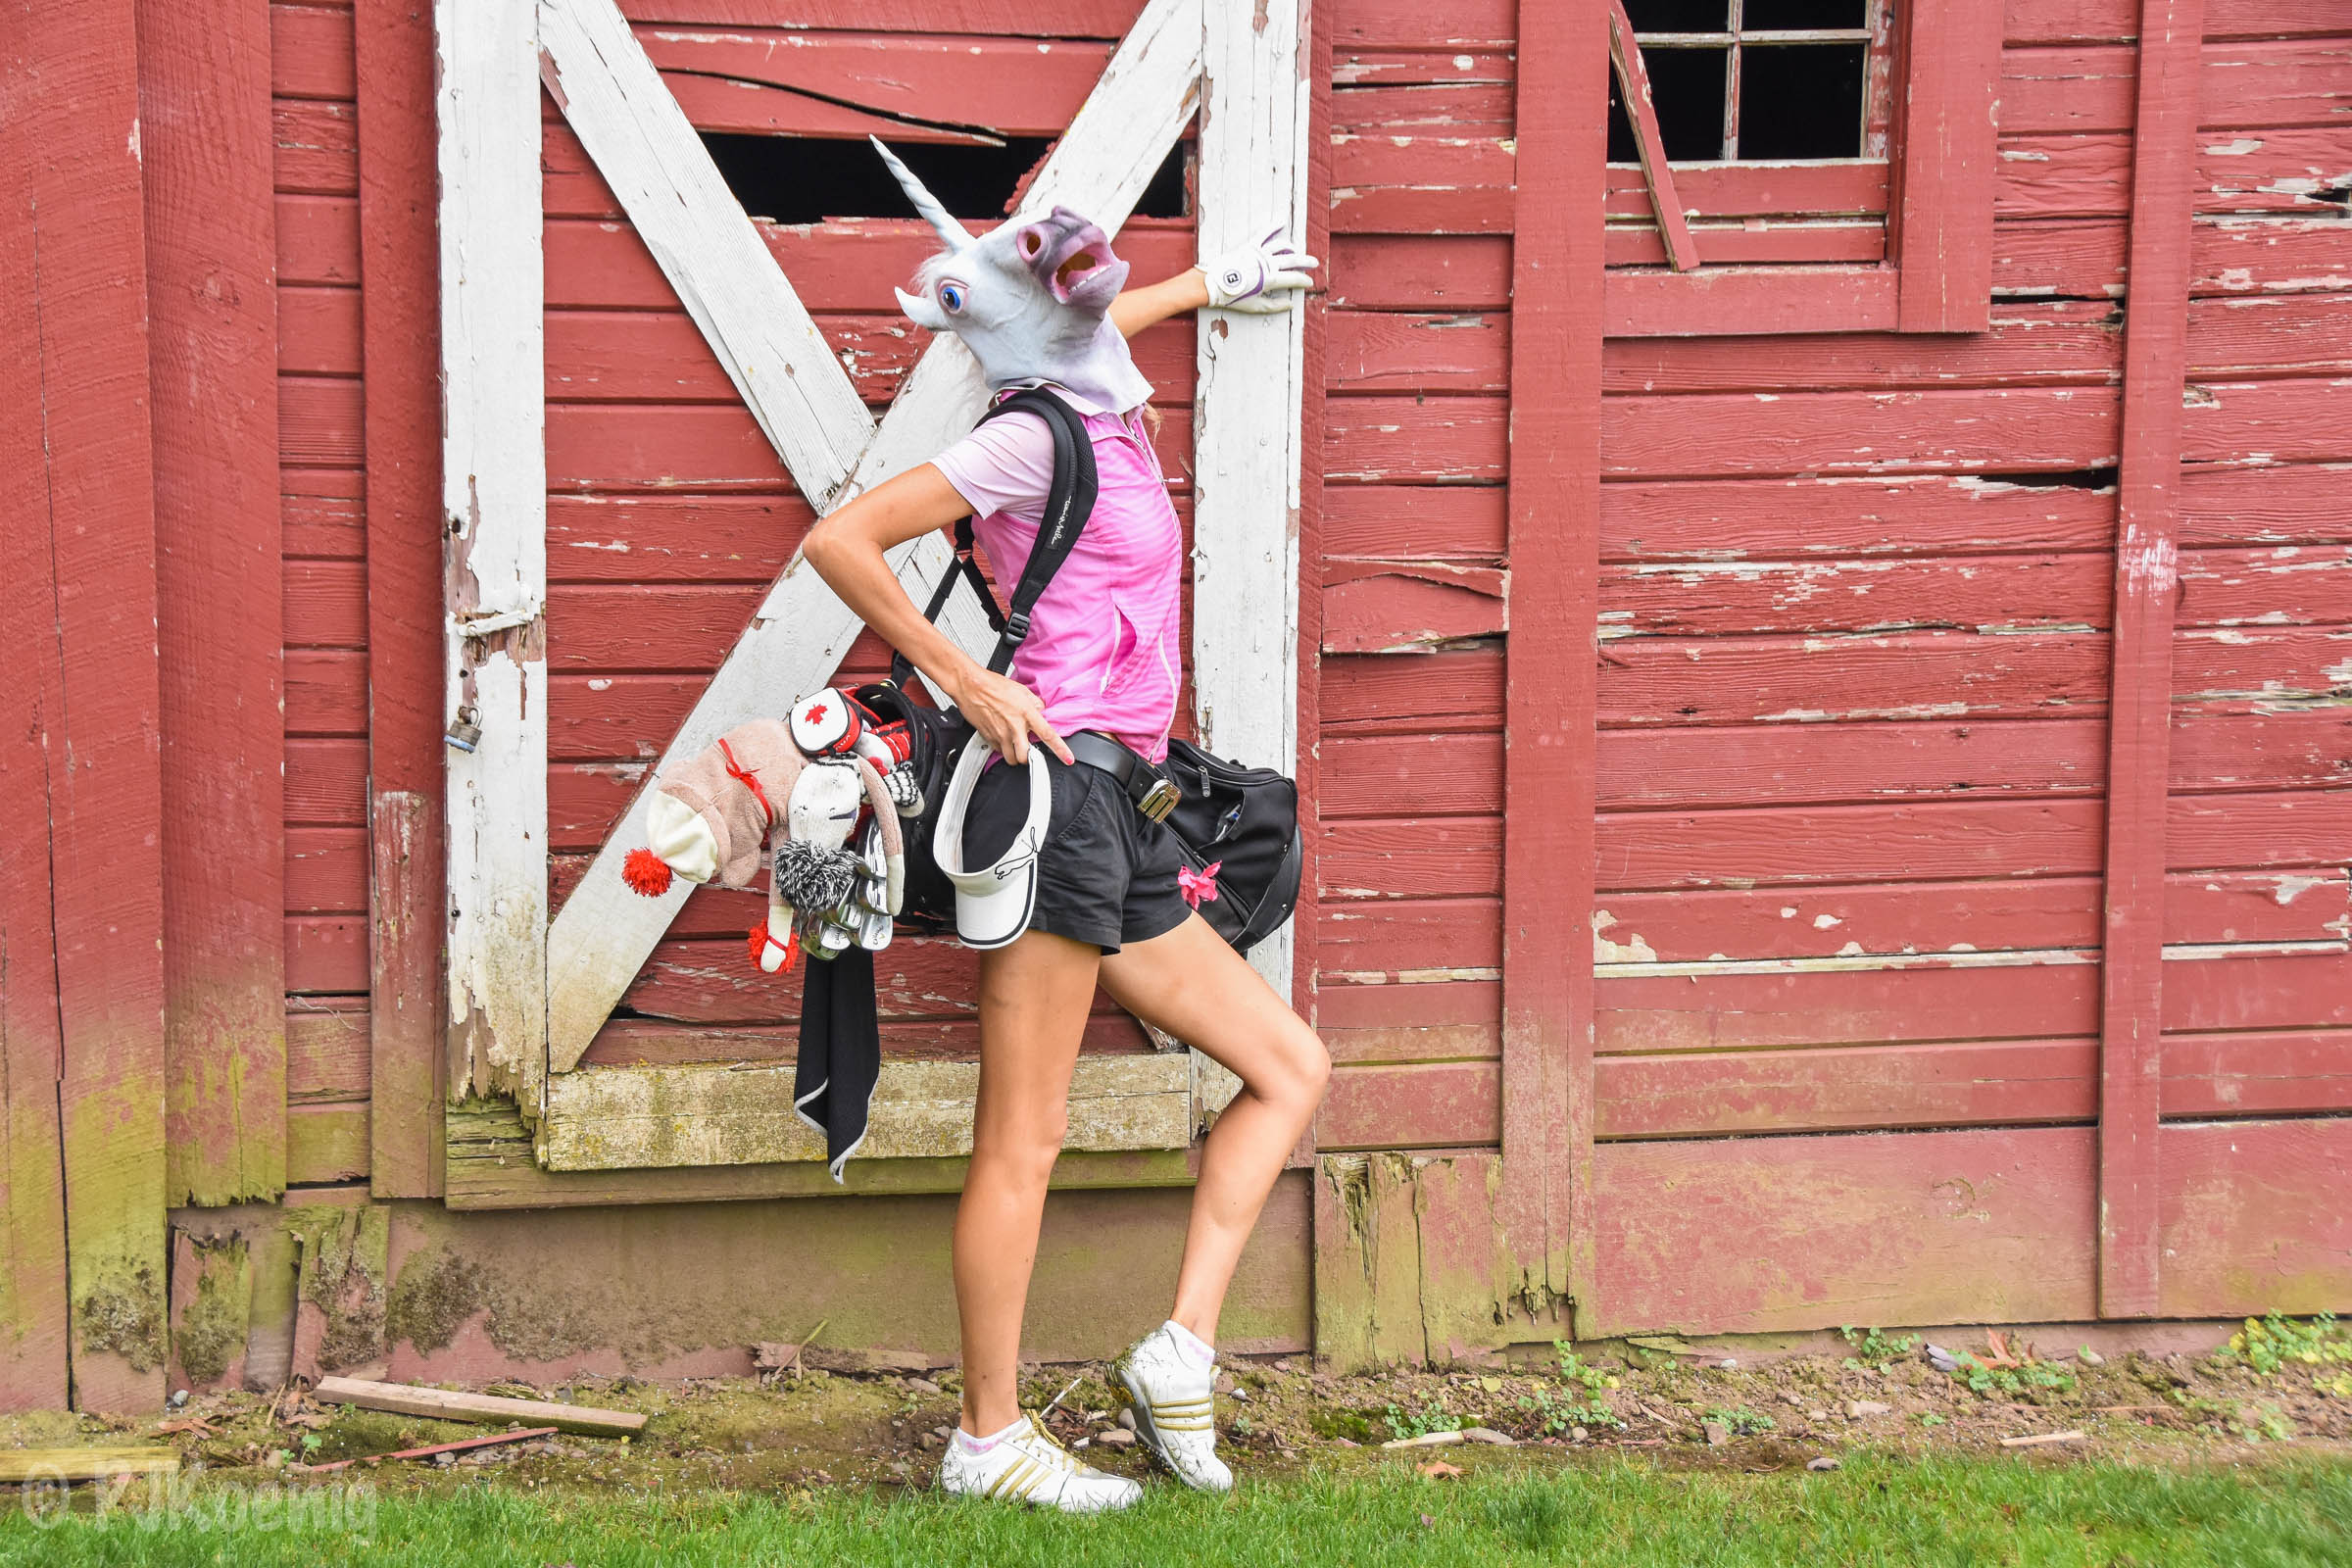 Next up for Golf Unicorn... barn modeling.  Golf Unicorns love to barn model.